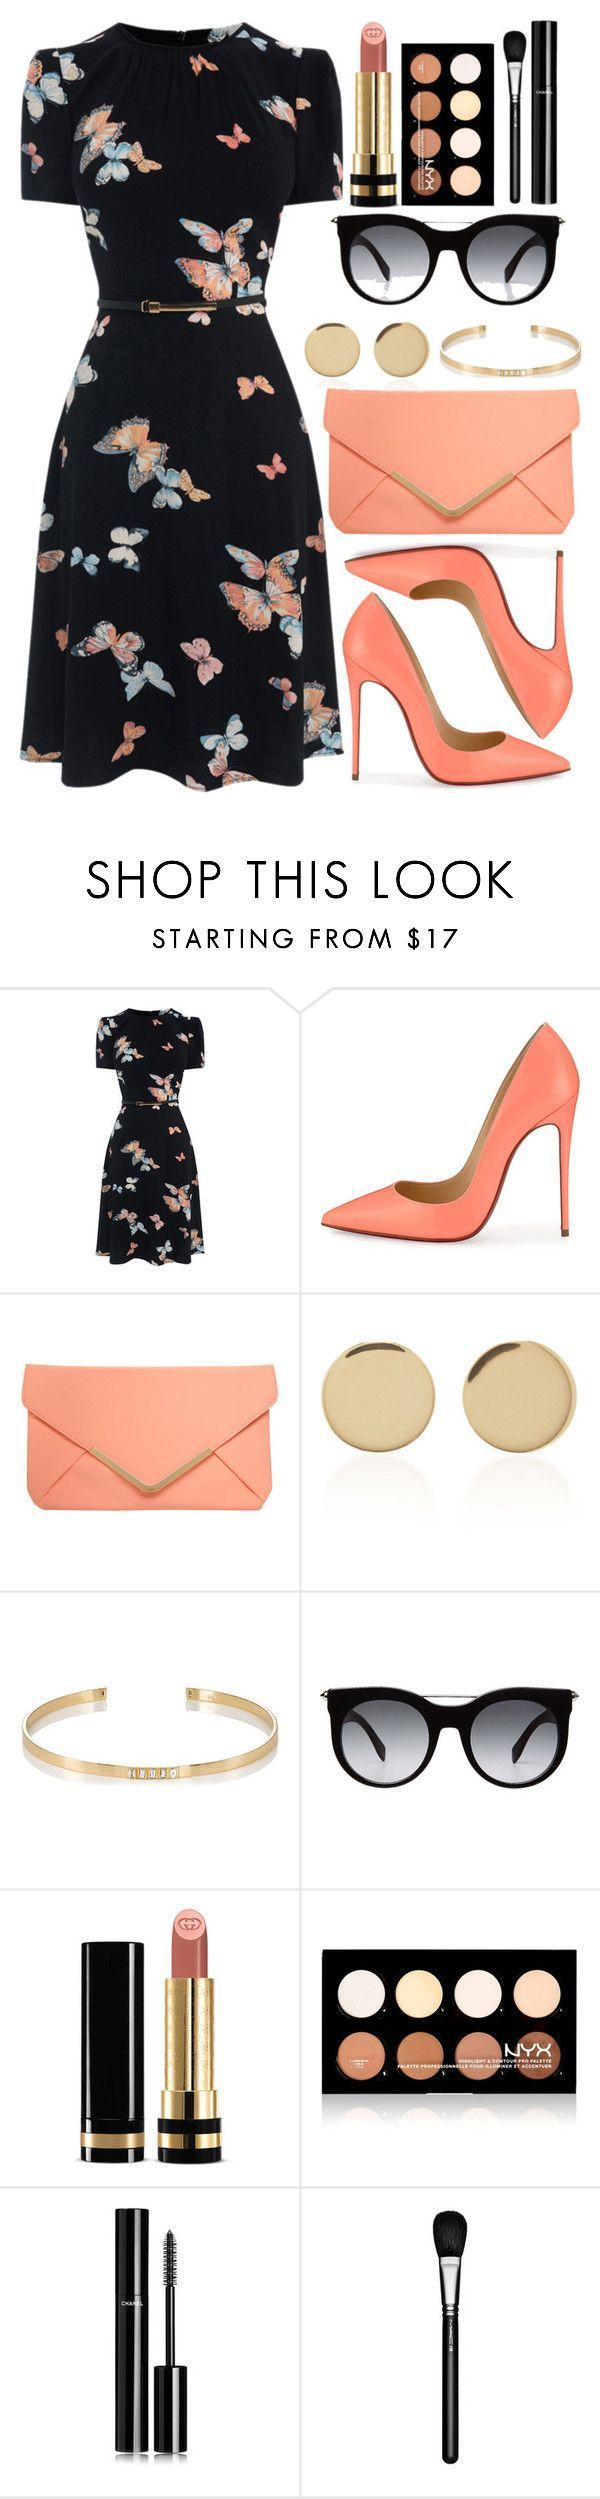 Untitled #4374 by natalyasidunova ❤️ liked on Polyvore featuring Christian Louboutin, Dorothy Perkins, Magdalena Frackowiak, Ileana Makri, Alexander McQueen, Gucci, NYX, Chanel and MAC Cosmetics #christianlouboutinflats